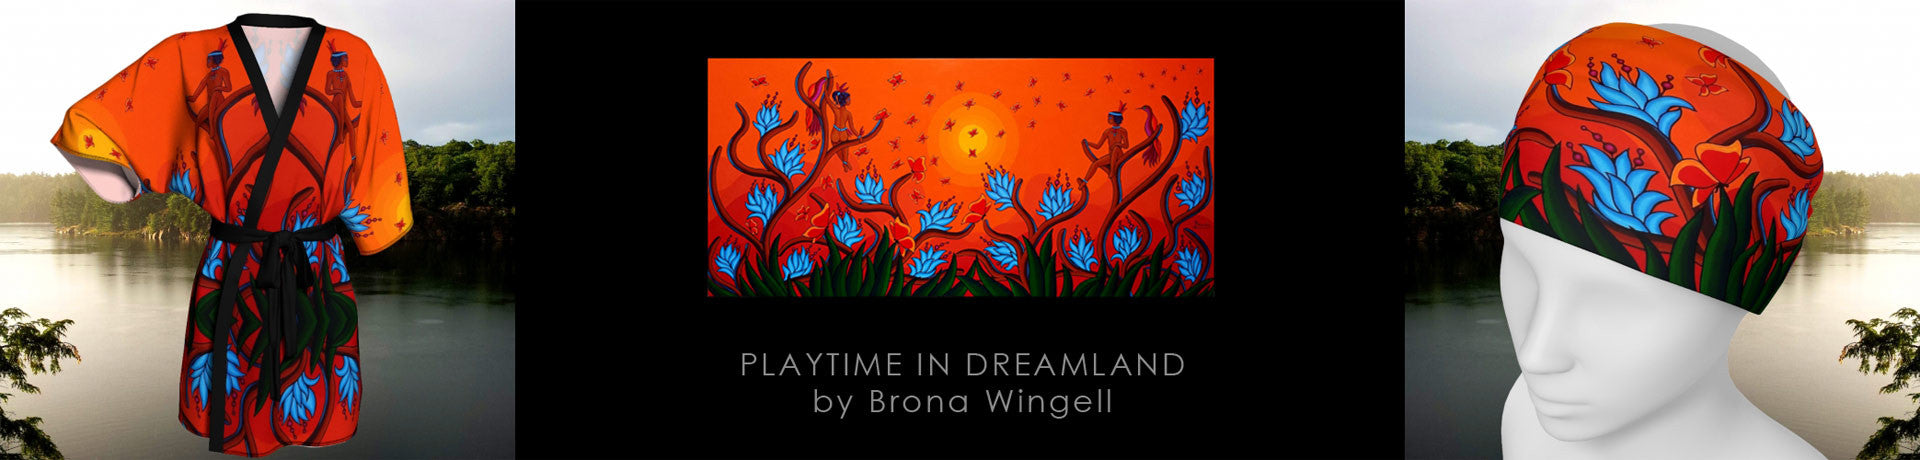 Playtime in Dreamland